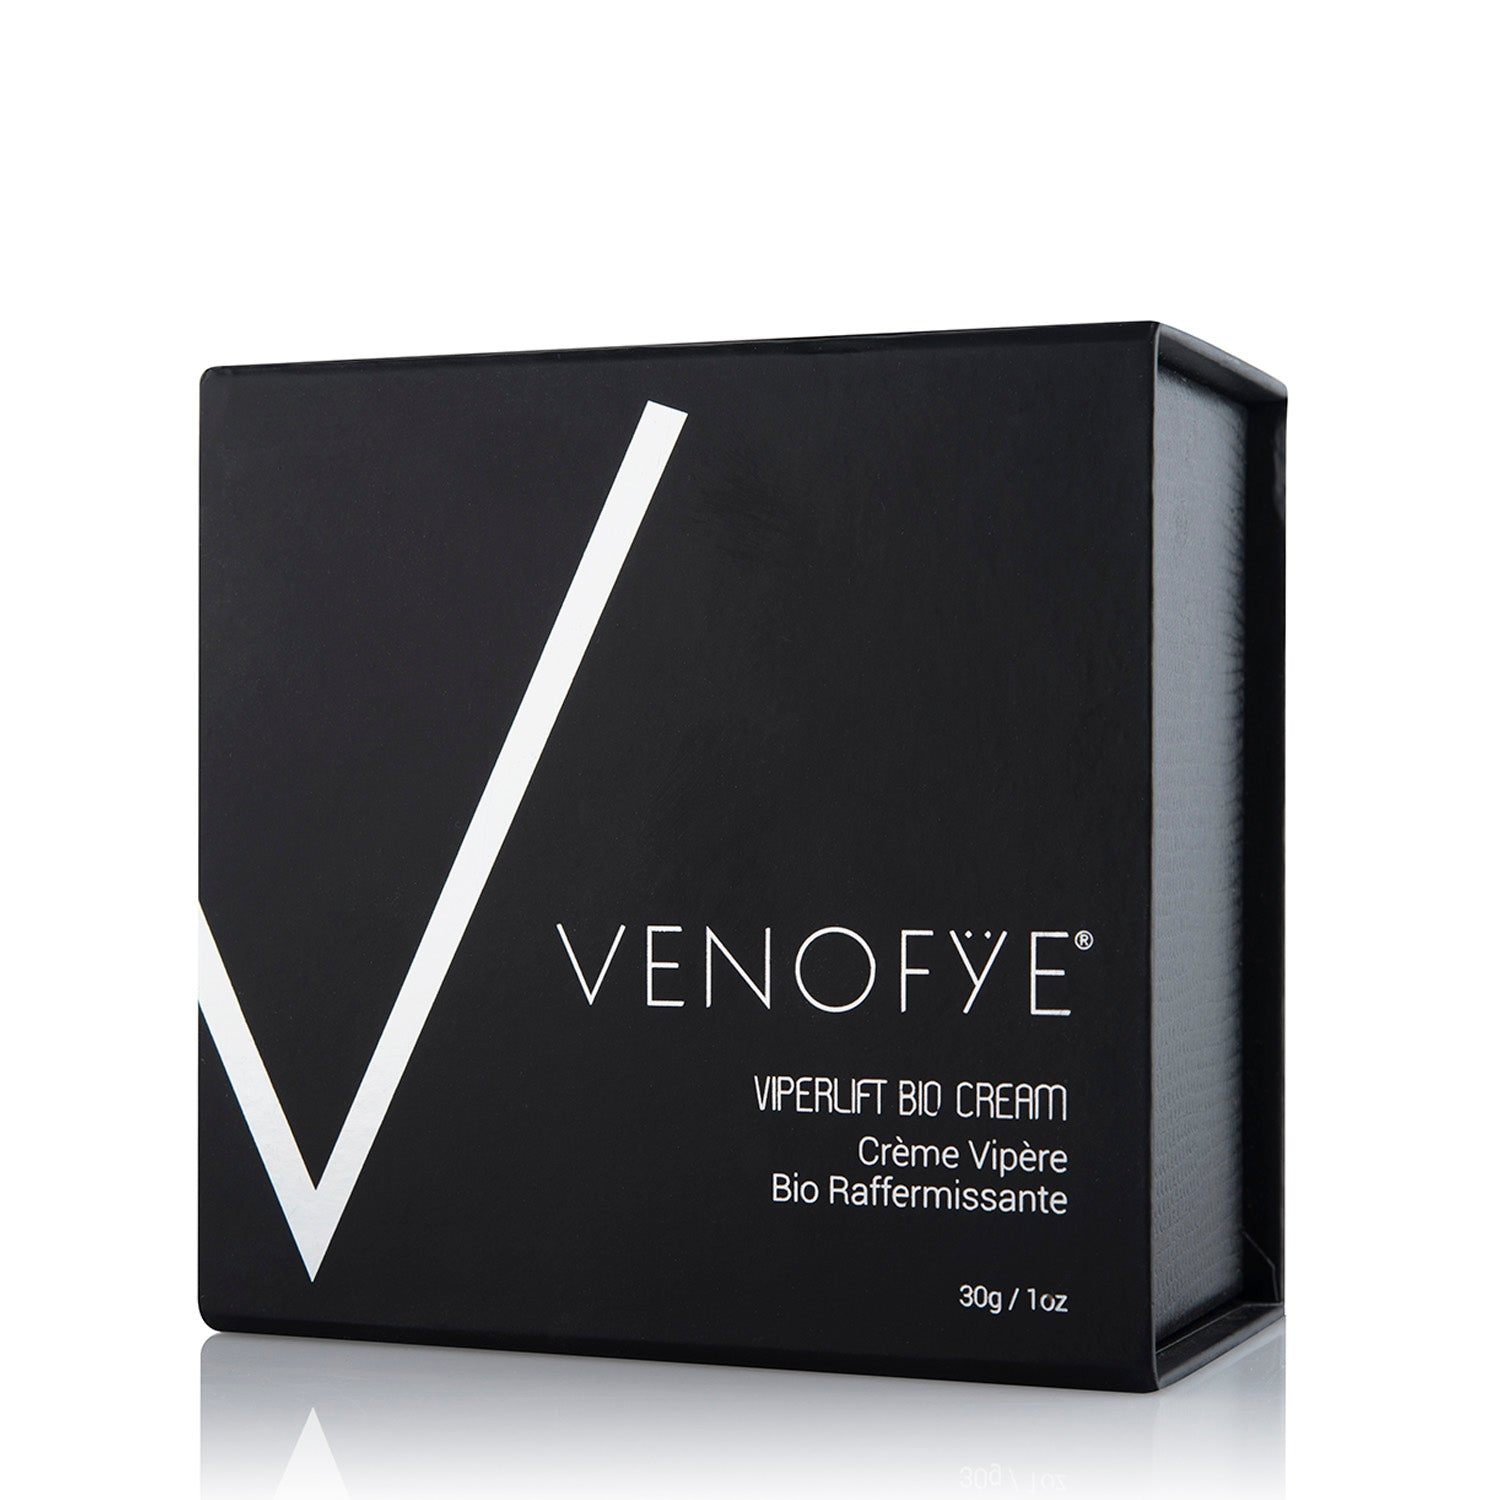 Venofye Anti Wrinkle Skin Cream